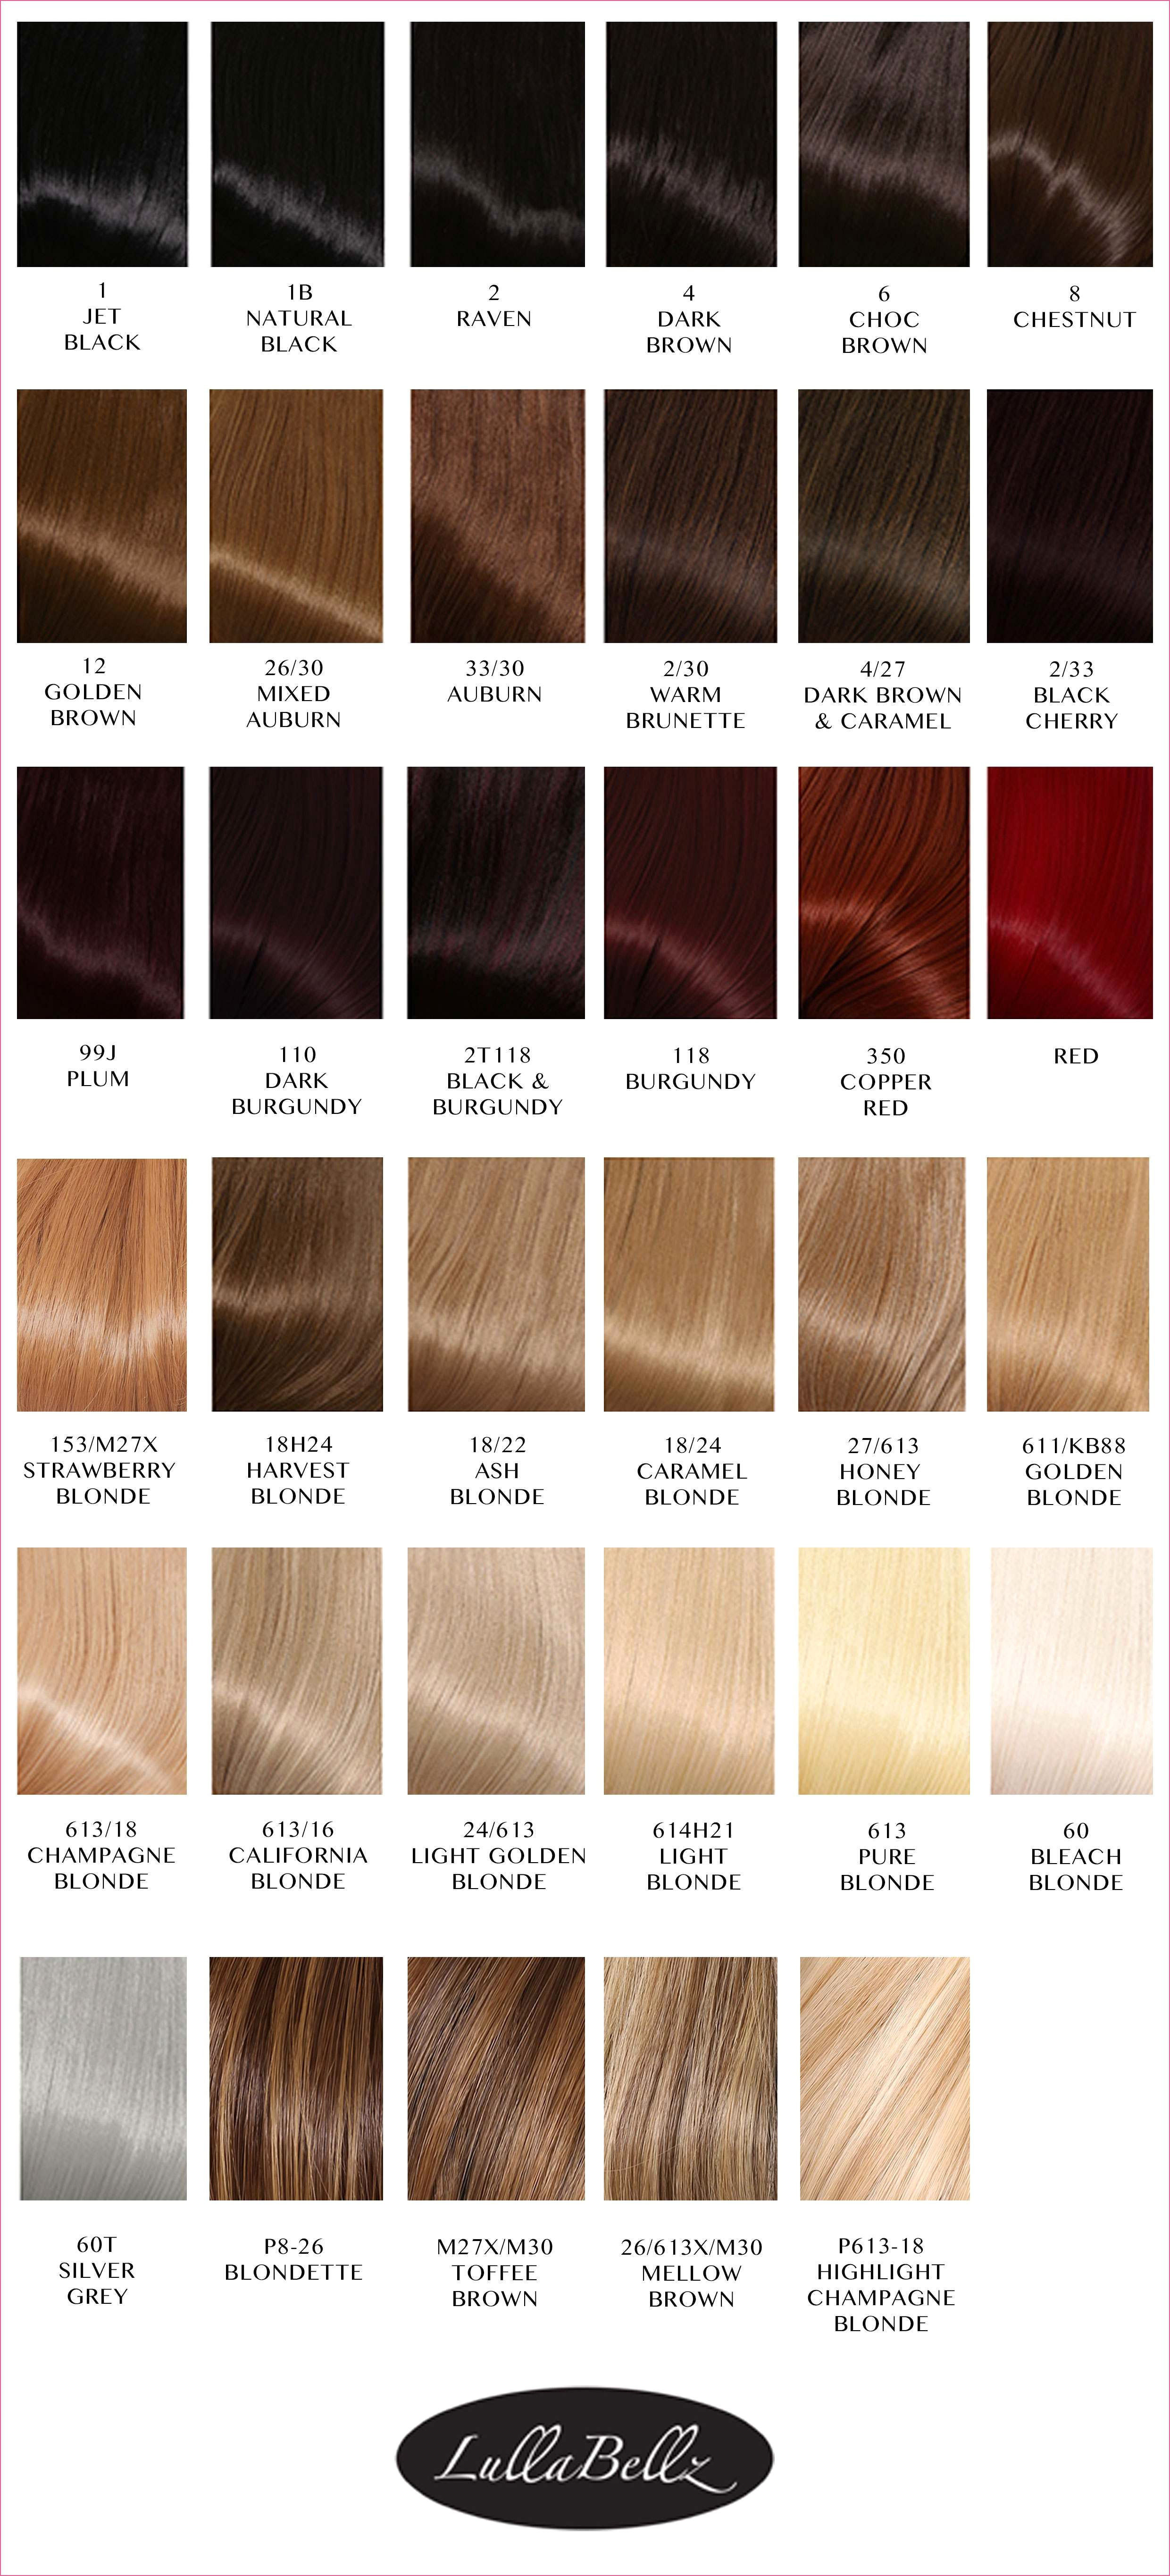 Hair Care Image By Brittany Sanchez In 2020 Blonde Hair Color